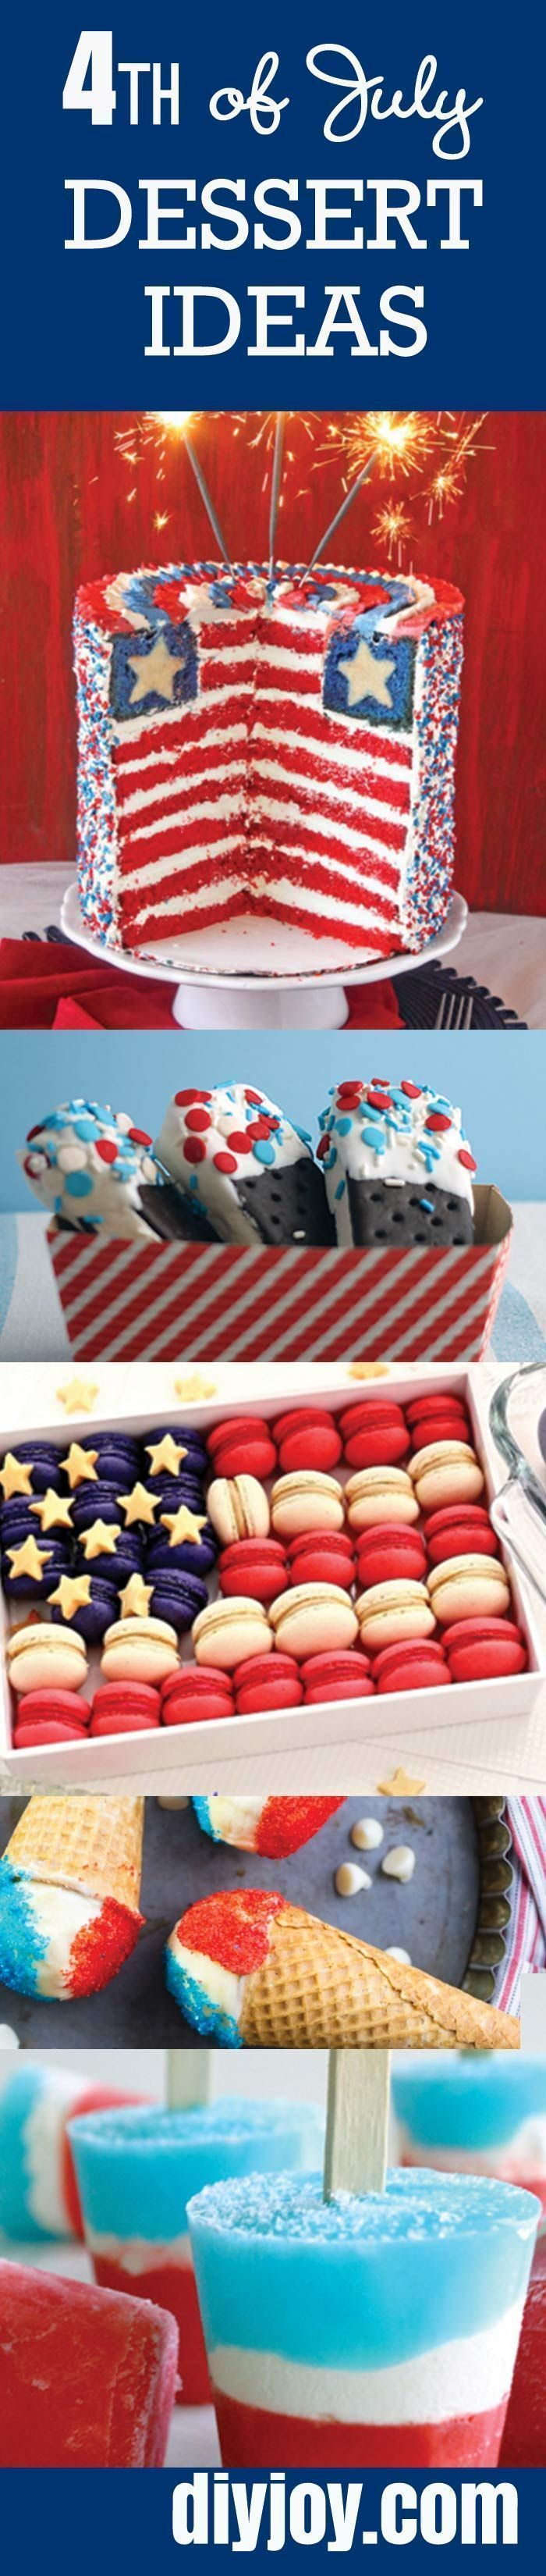 Best Labor Day Recipes and 4th of July Dessert Ideas | Best Dessert Ideas for DIY Parties #birthday cake,wedding cakes,wedding ideas,cake recipes,cake decorating,hochzeit kuchen,kuchen kindergeburtstag 4th of July Desserts and Patriotic Recipe Ideas #labordaydesserts Best Labor Day Recipes and 4th of July Dessert Ideas | Best Dessert Ideas for DIY Parties #birthday cake,wedding cakes,wedding ideas,cake recipes,cake decorating,hochzeit kuchen,kuchen kindergeburtstag 4th of July Desserts and Patri #labordayfoodideas